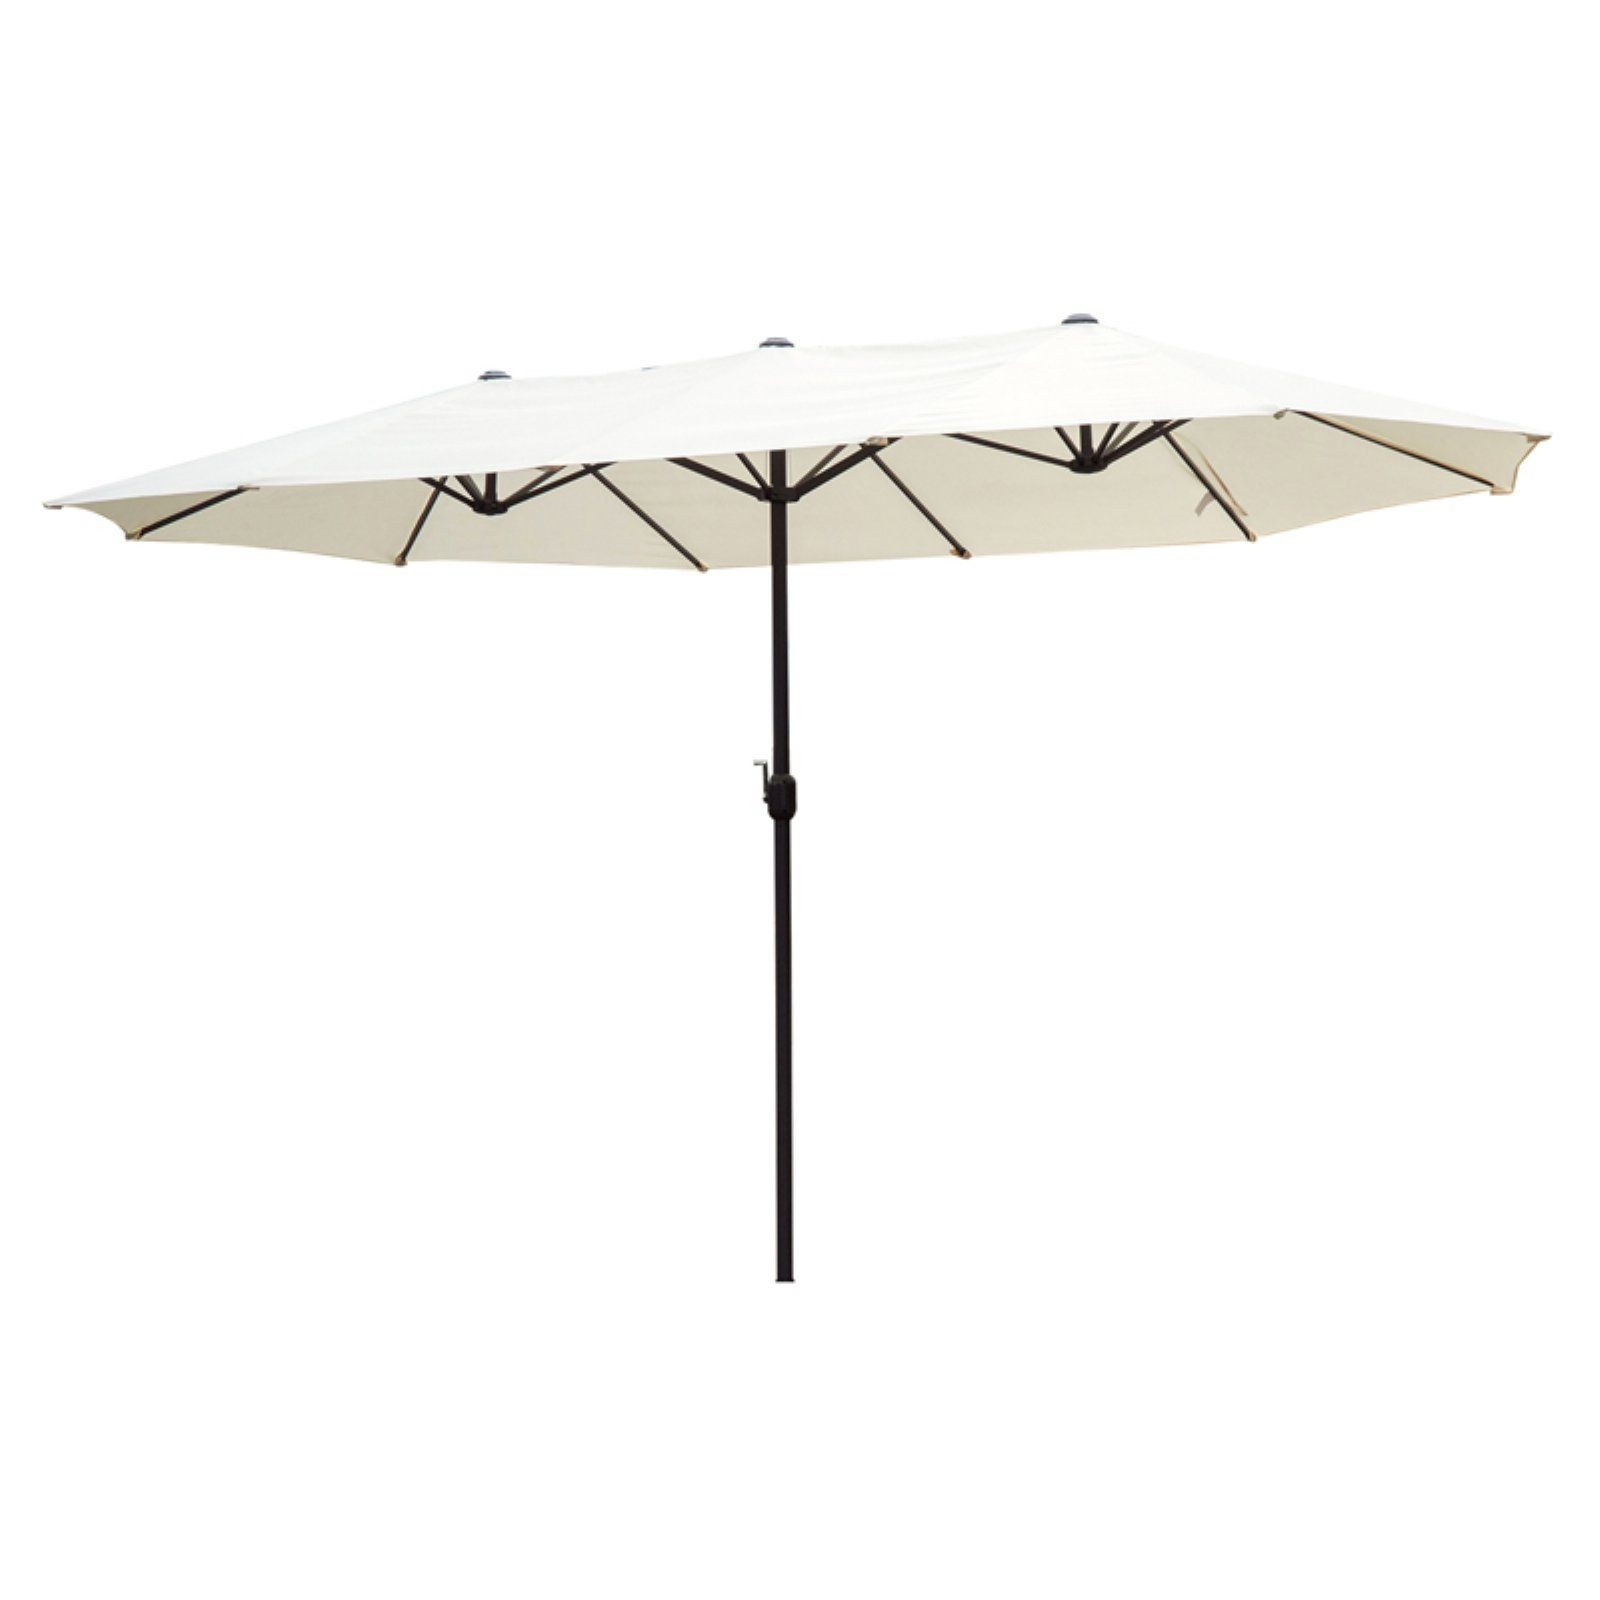 Outsunny 15 Ft Steel Double Sided Patio Umbrella Cream White Patio Umbrella Side Patio Patio